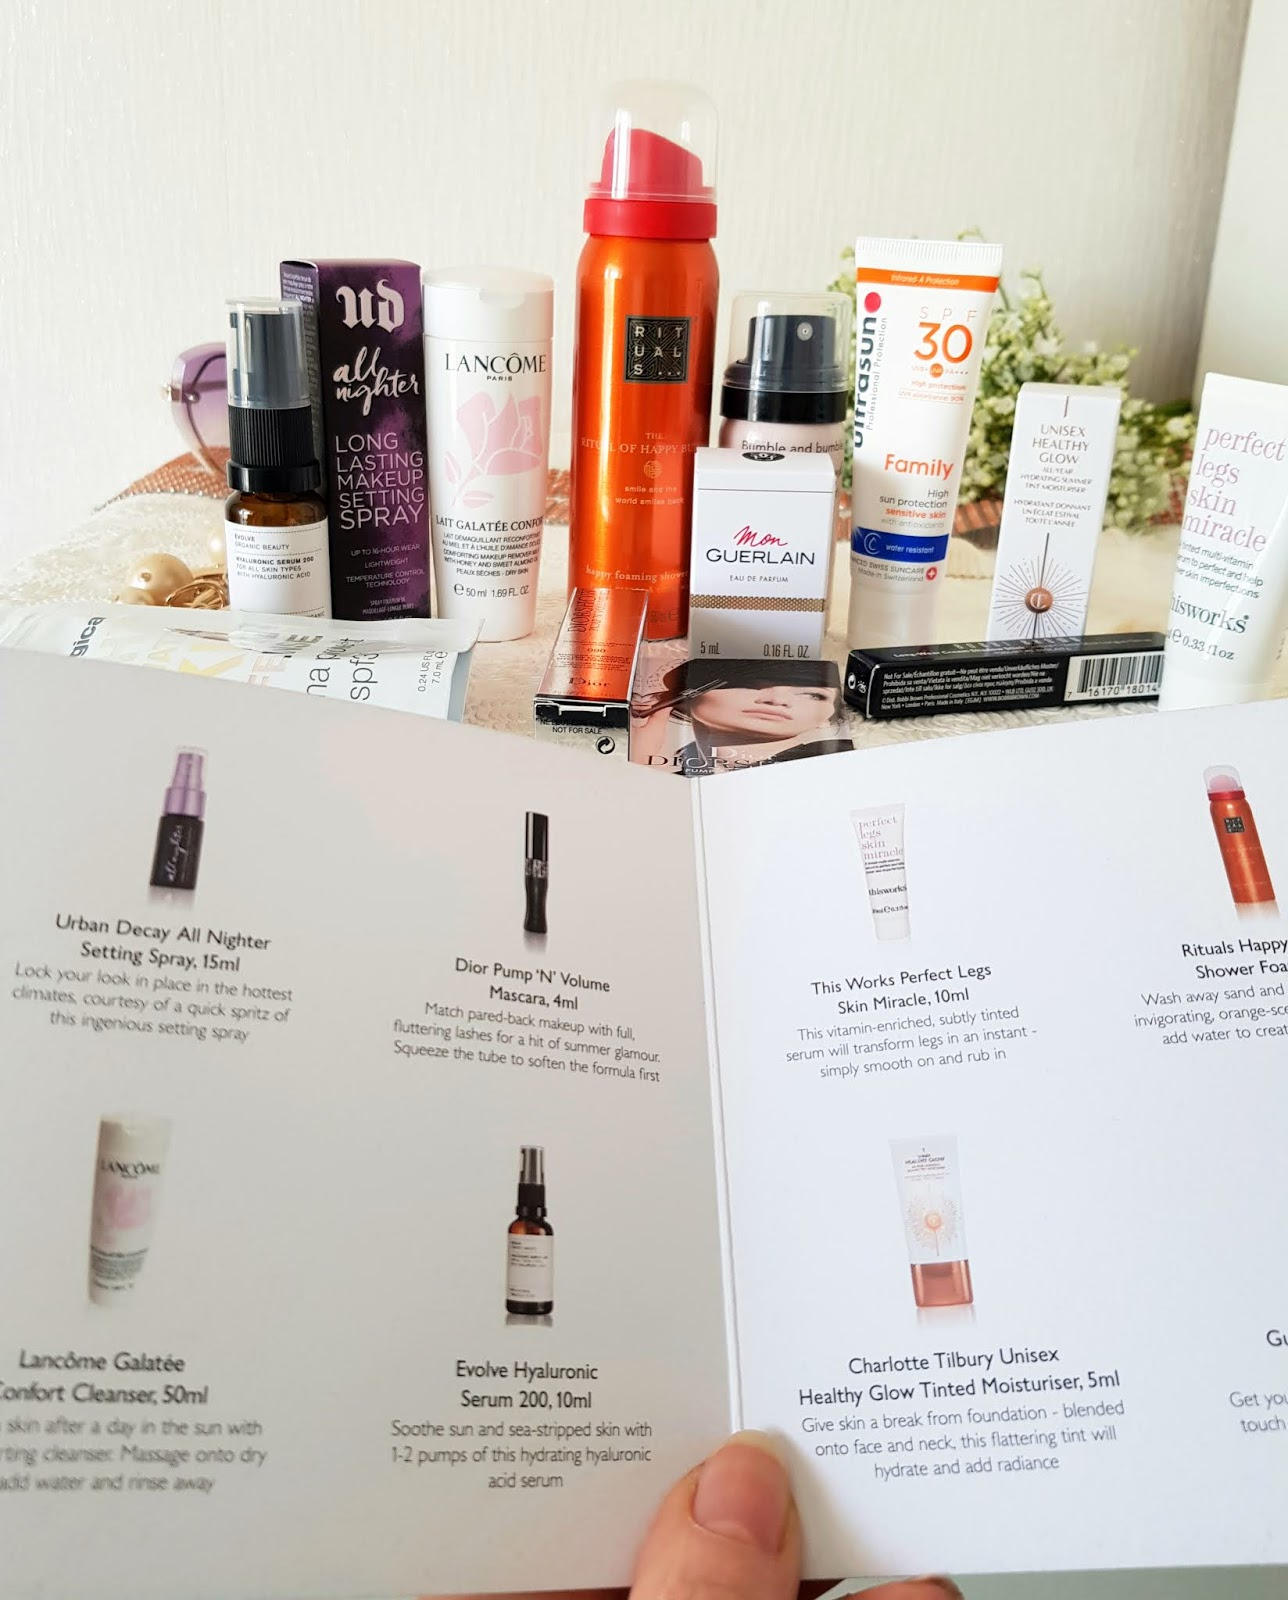 Products and instructions inside the John Lewis and Partners Holiday Heroes box